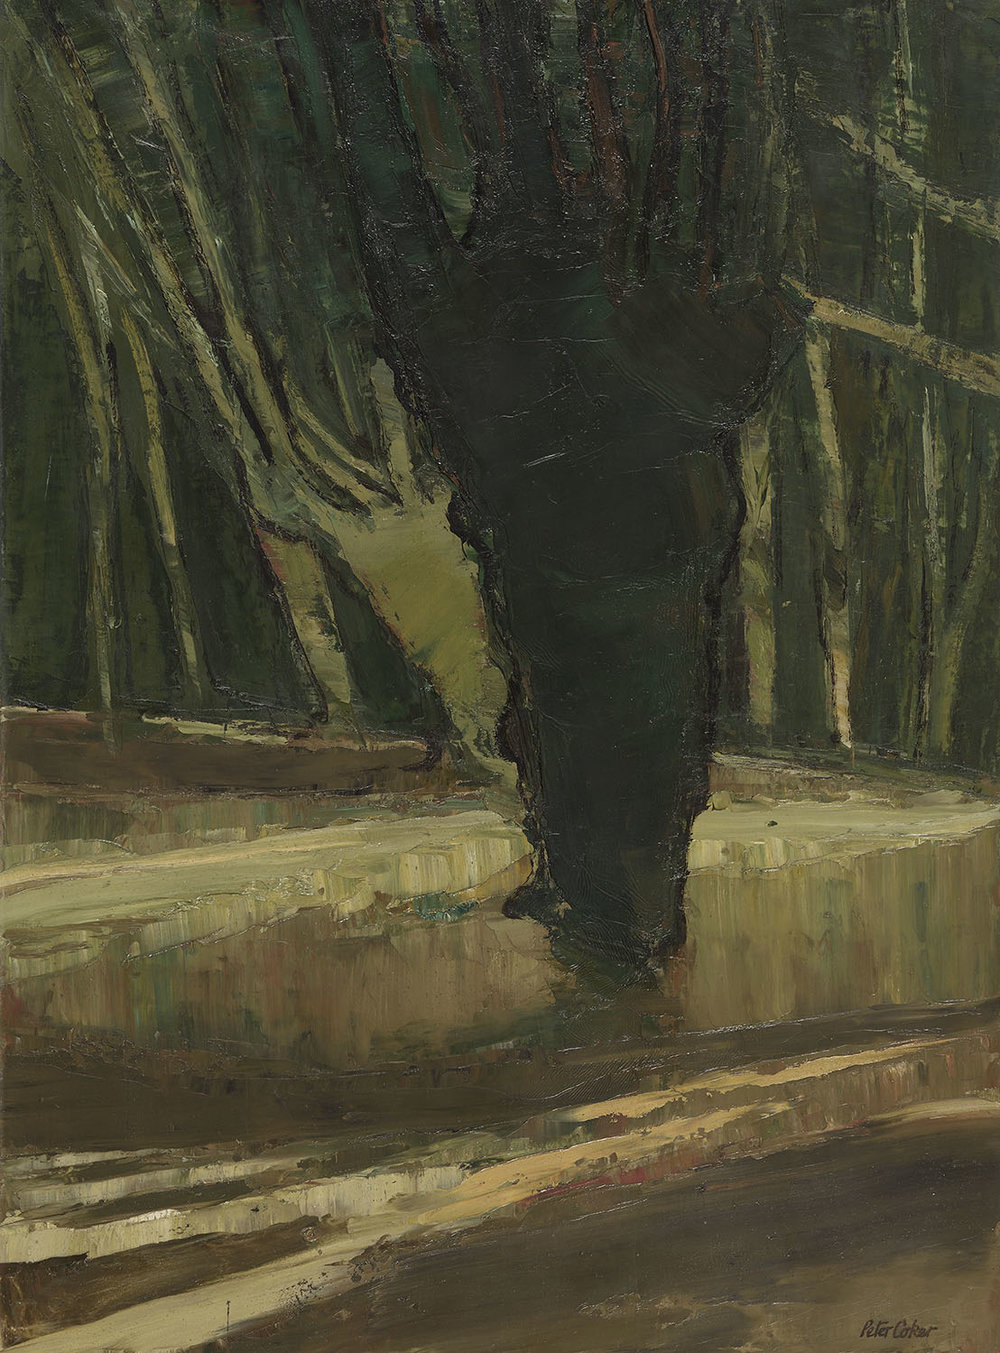 Peter Coker RA (1926-2004)    Epping,  1964, Oil on canvas, 30 x 24 in, Signed  [CAS 14] Acquired in 1973